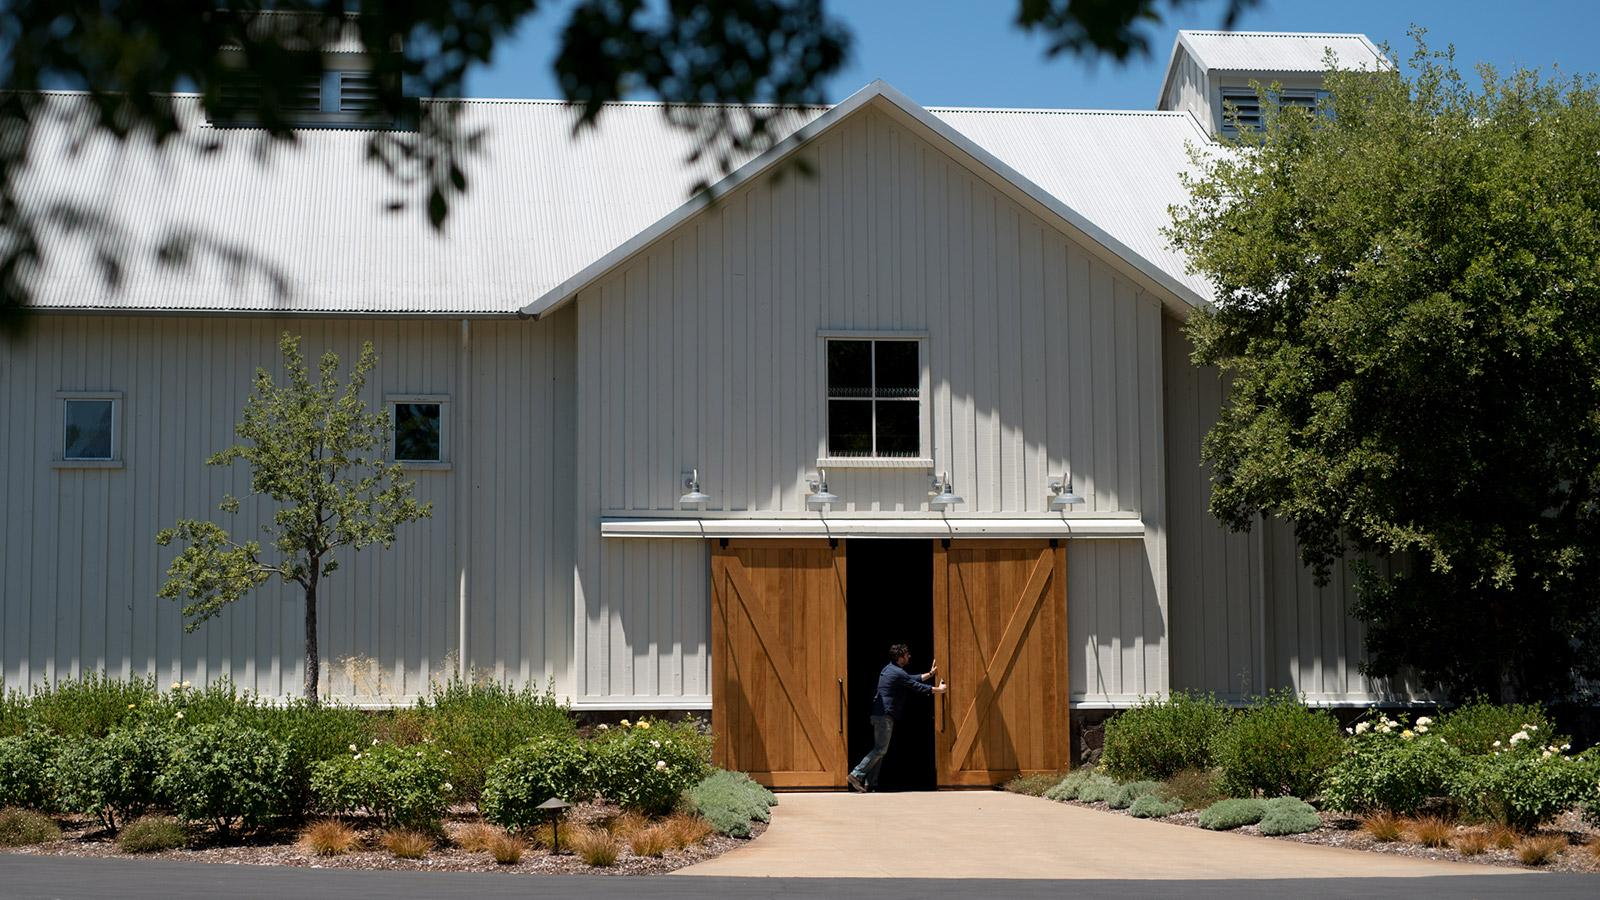 The Larkmead estate has stood the test of time, and its wines are shining ever brighter.